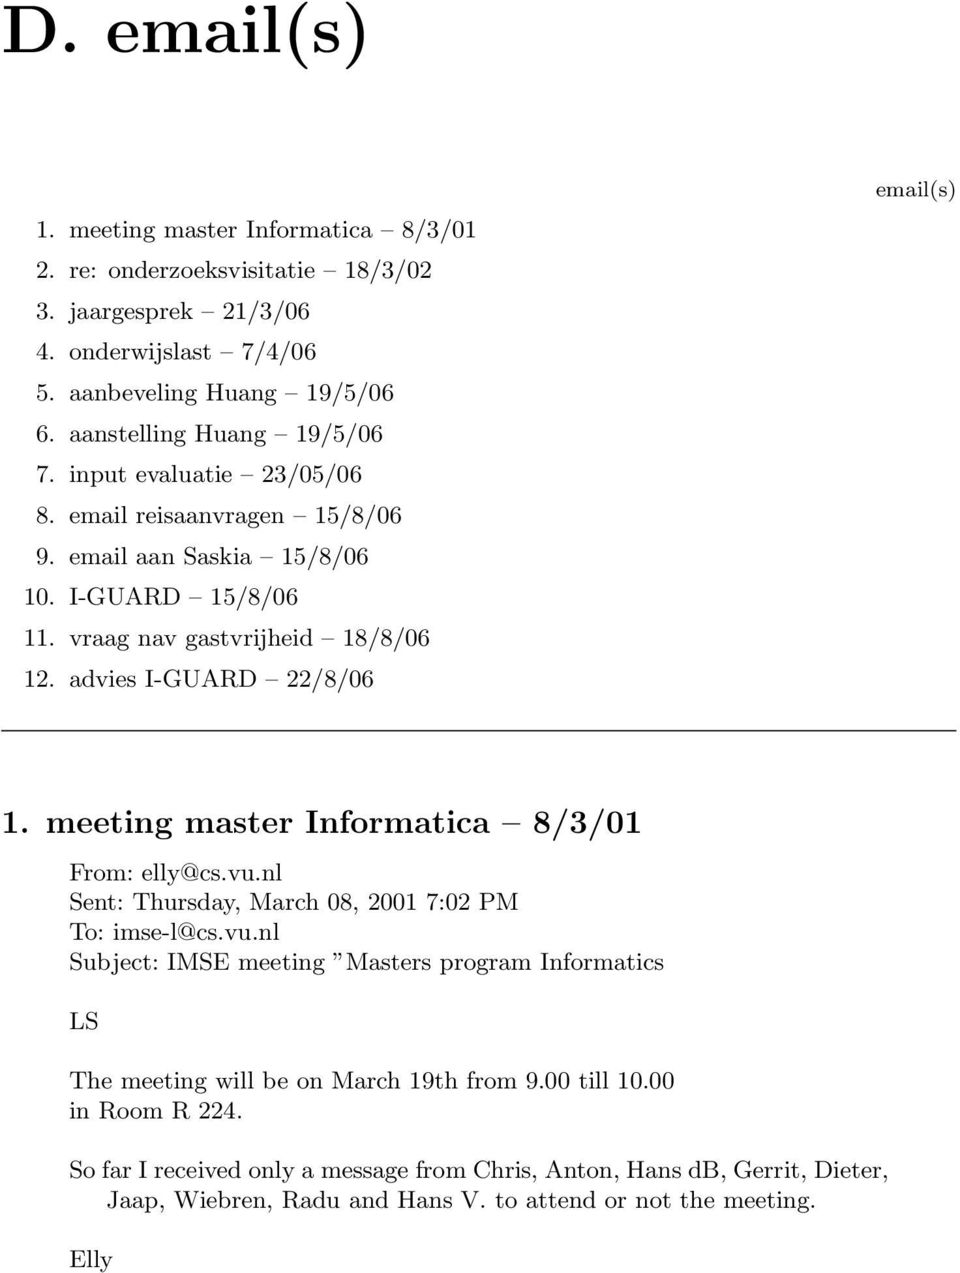 advies I-GUARD 22/8/06 email(s) 1. meeting master Informatica 8/3/01 From: elly@cs.vu.nl Sent: Thursday, March 08, 2001 7:02 PM To: imse-l@cs.vu.nl Subject: IMSE meeting Masters program Informatics LS The meeting will be on March 19th from 9.